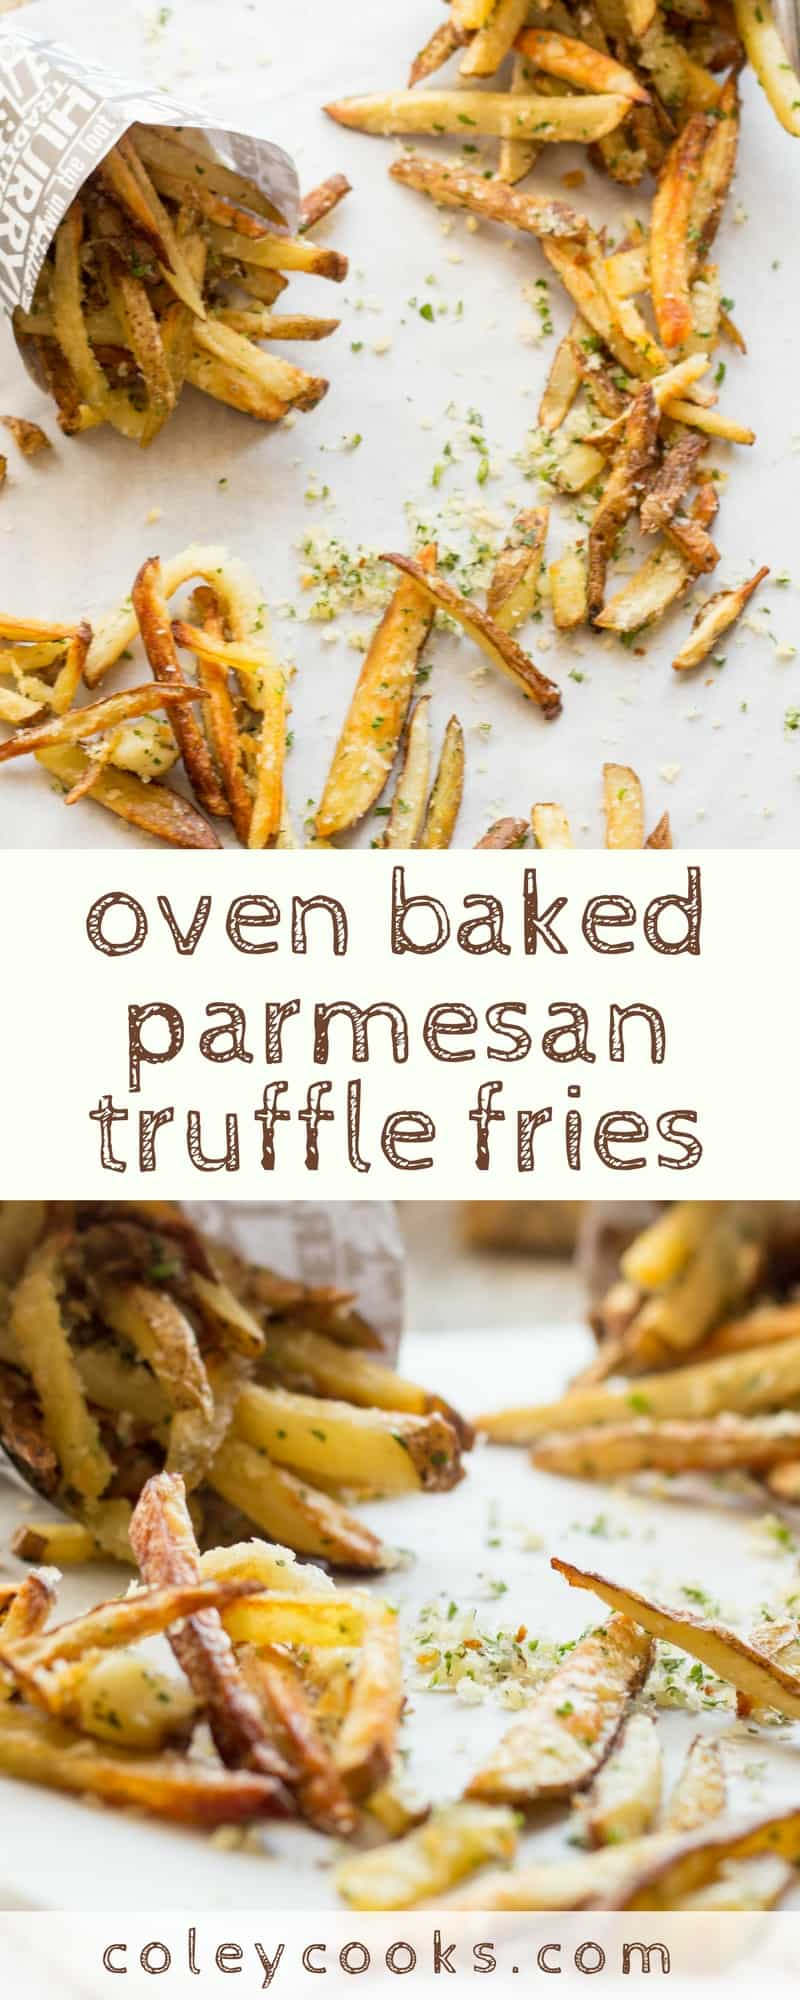 OVEN BAKED PARMESAN TRUFFLE FRIES   Tricks to getting the crispiest oven baked fries that get an extra boost of flavor from parmesan cheese and truffle oil. The best!   ColeyCooks.com